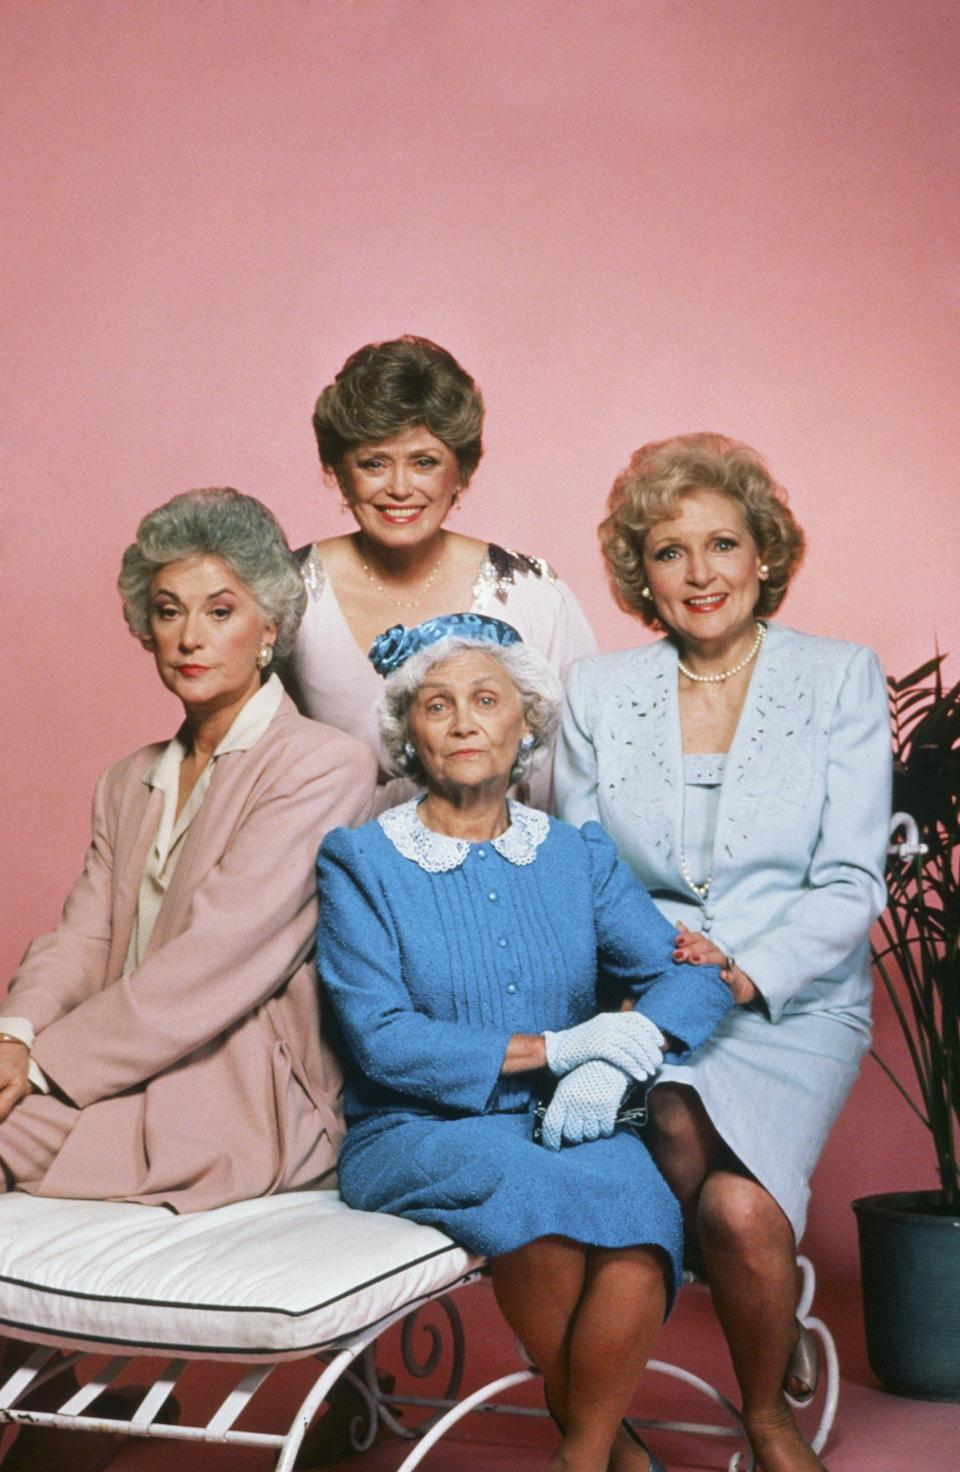 <p>When you think of <em>The Golden Girls</em>, the iconic images of Beatrice (aka Bea) Arthur, Betty White, Rue McClanahan and Estelle Getty in their Miami pad likely pop into your brain. These actresses are still perhaps most well-known for the iconic roles that they played from 1985–1992 on the beloved sitcom, and it's hard to imagine them as anyone other than Rose Nylund, Blanche Devereaux, Sophia Petrillo and Dorothy Zbornak living that glamorous BFF life. But, these actresses did have lives and careers before they took that first bite of cheesecake, and some of them even crossed paths before they traveled down the road and back again. So picture it, the 1950s, '60s and '70s — these women are making their way through Hollywood.</p>